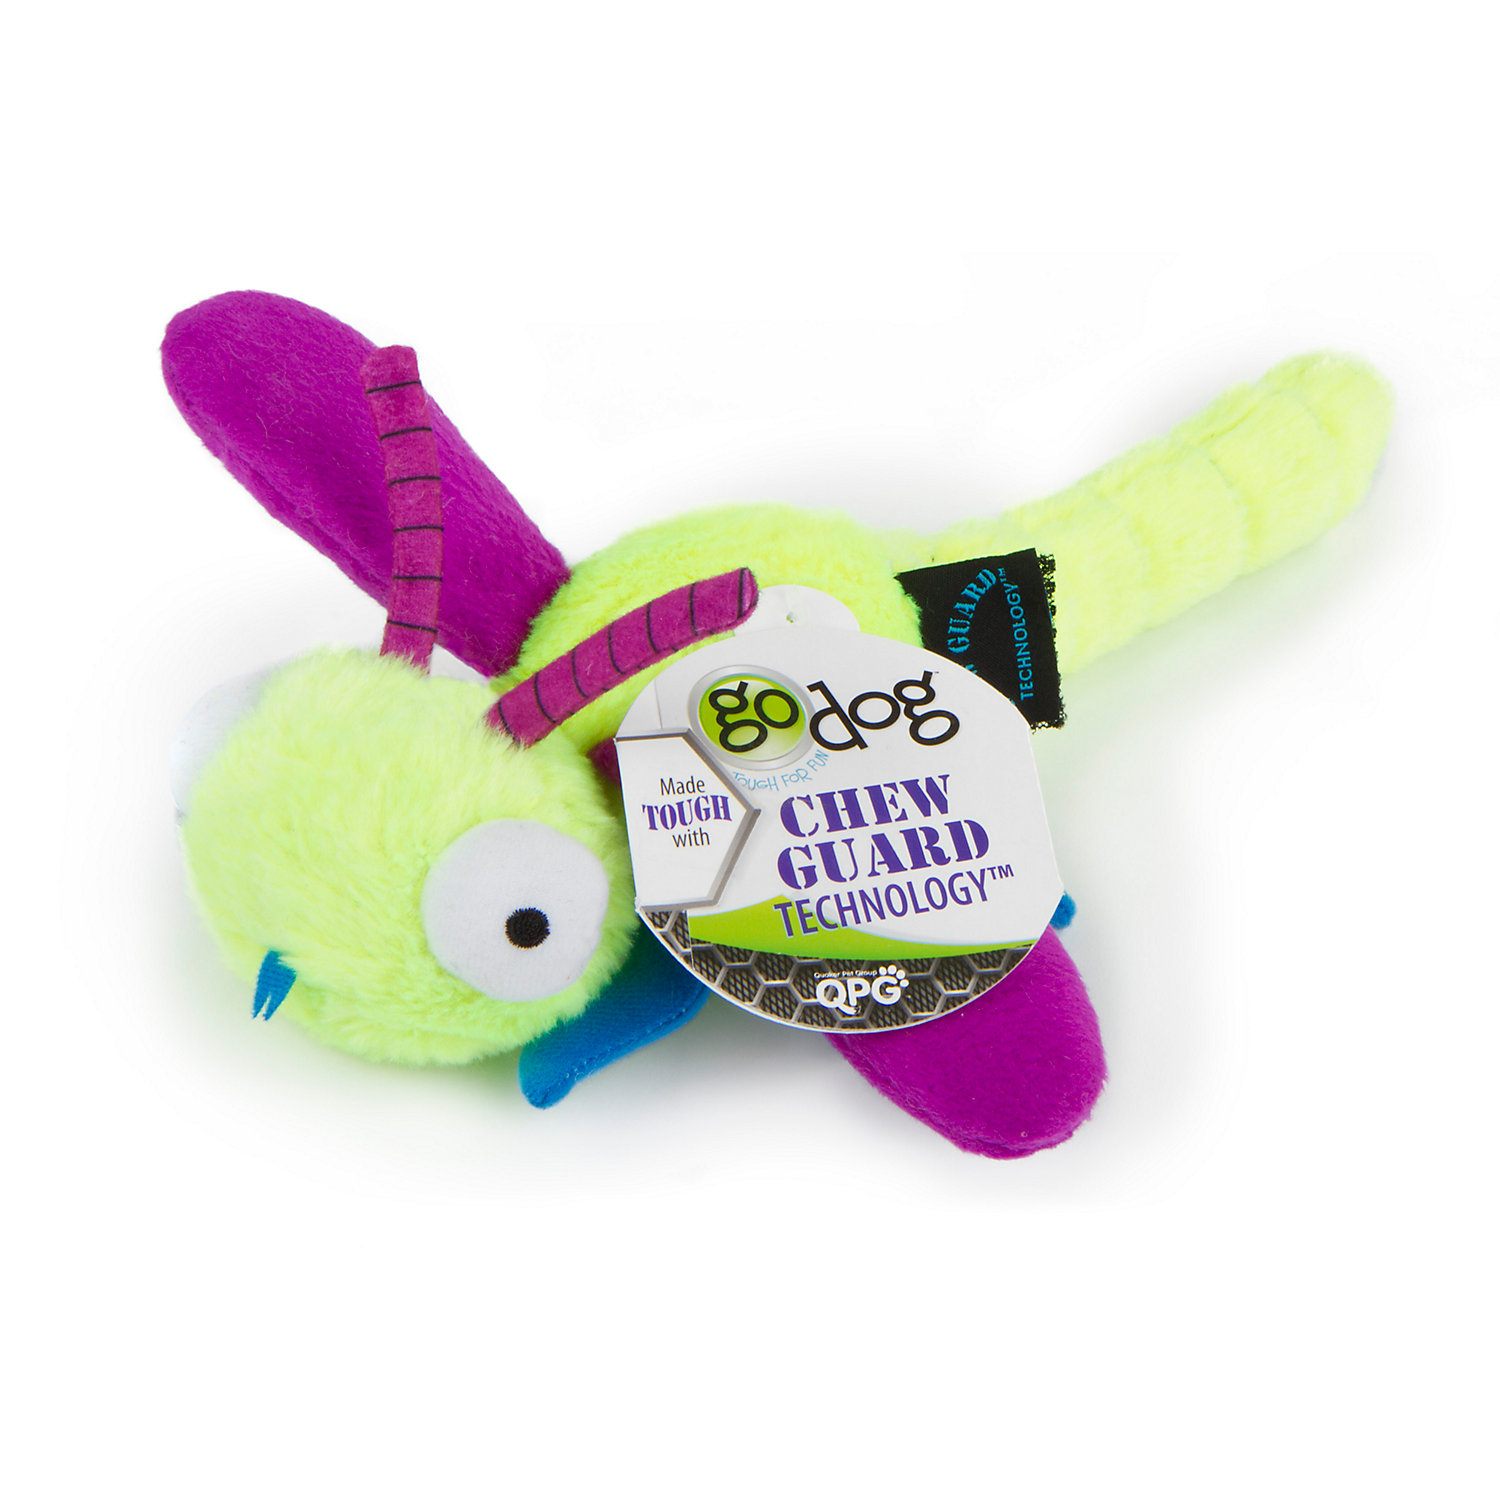 Image of Godog Bugs Dragon Fly Lime Large With Chew Guard Green